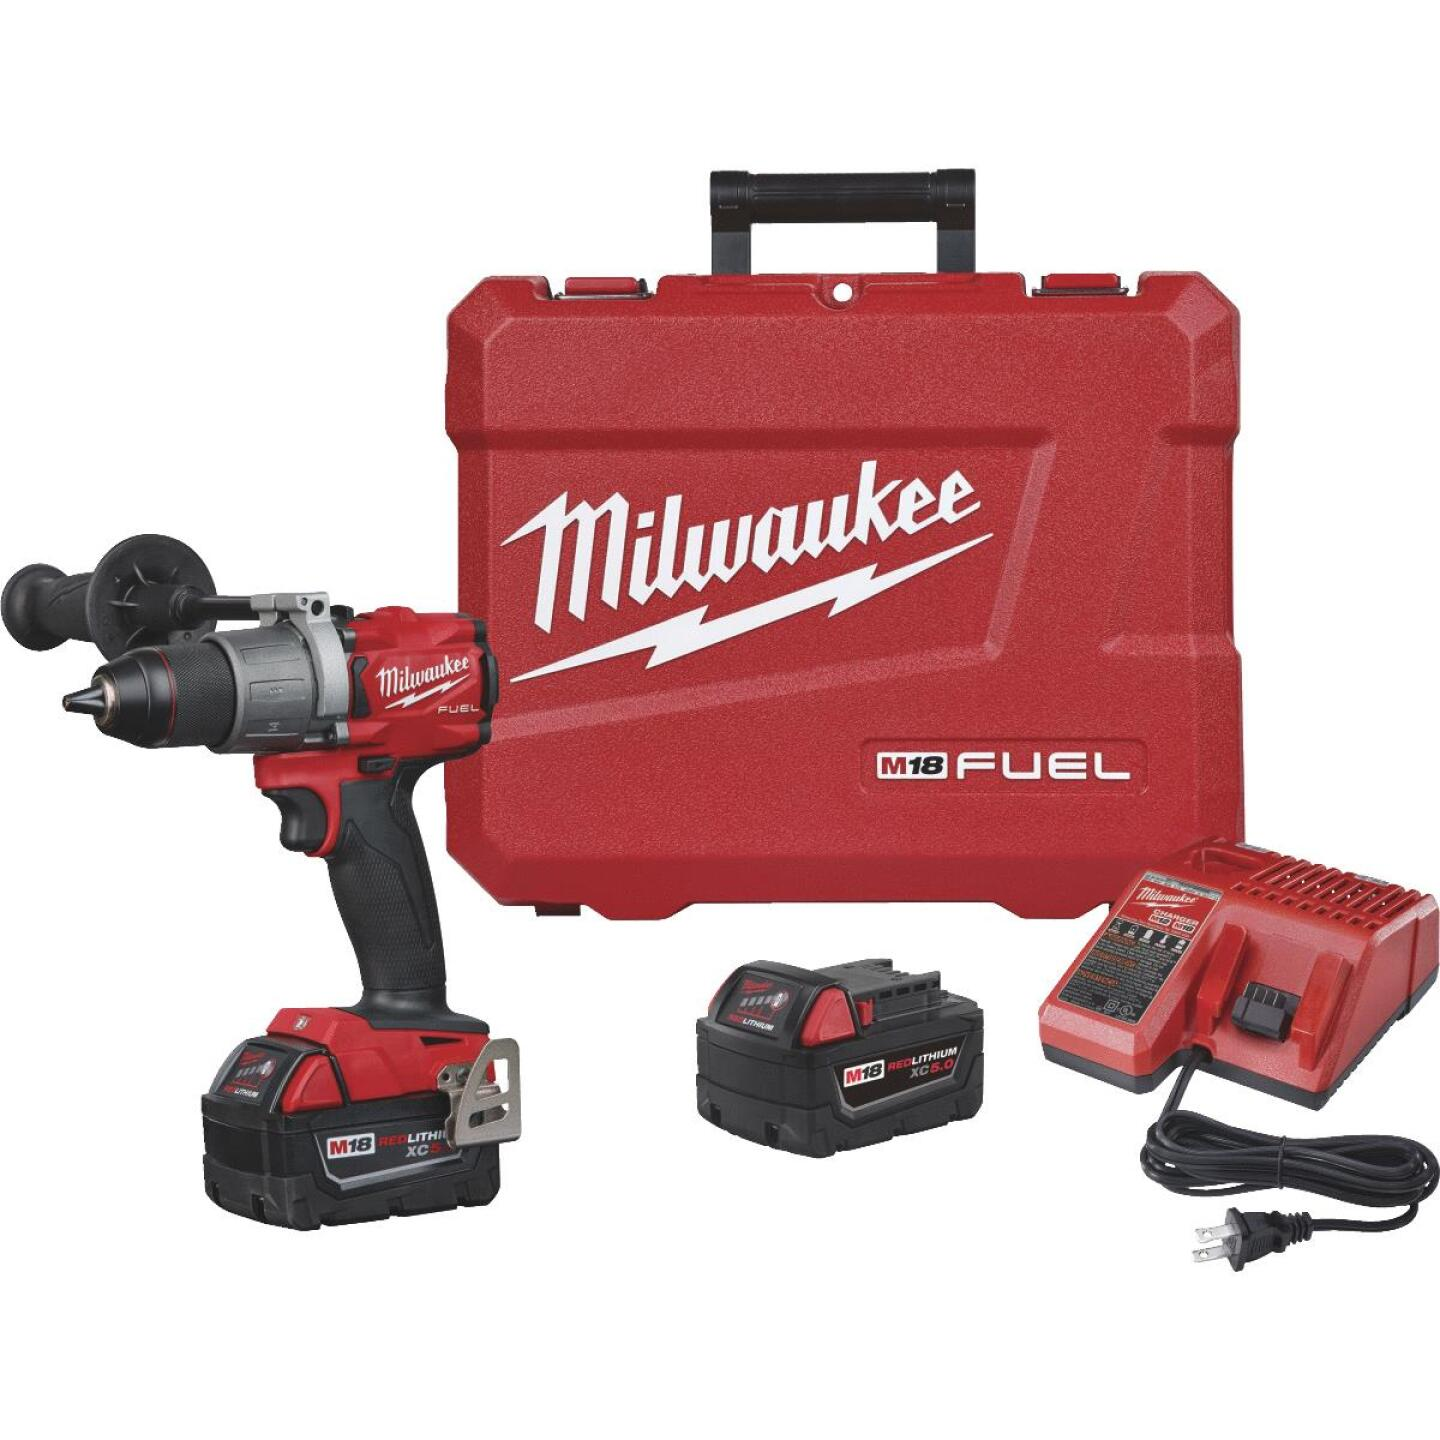 Milwaukee M18 FUEL 18 Volt XC Lithium-Ion Brushless 1/2 In. Cordless Drill Kit Image 1